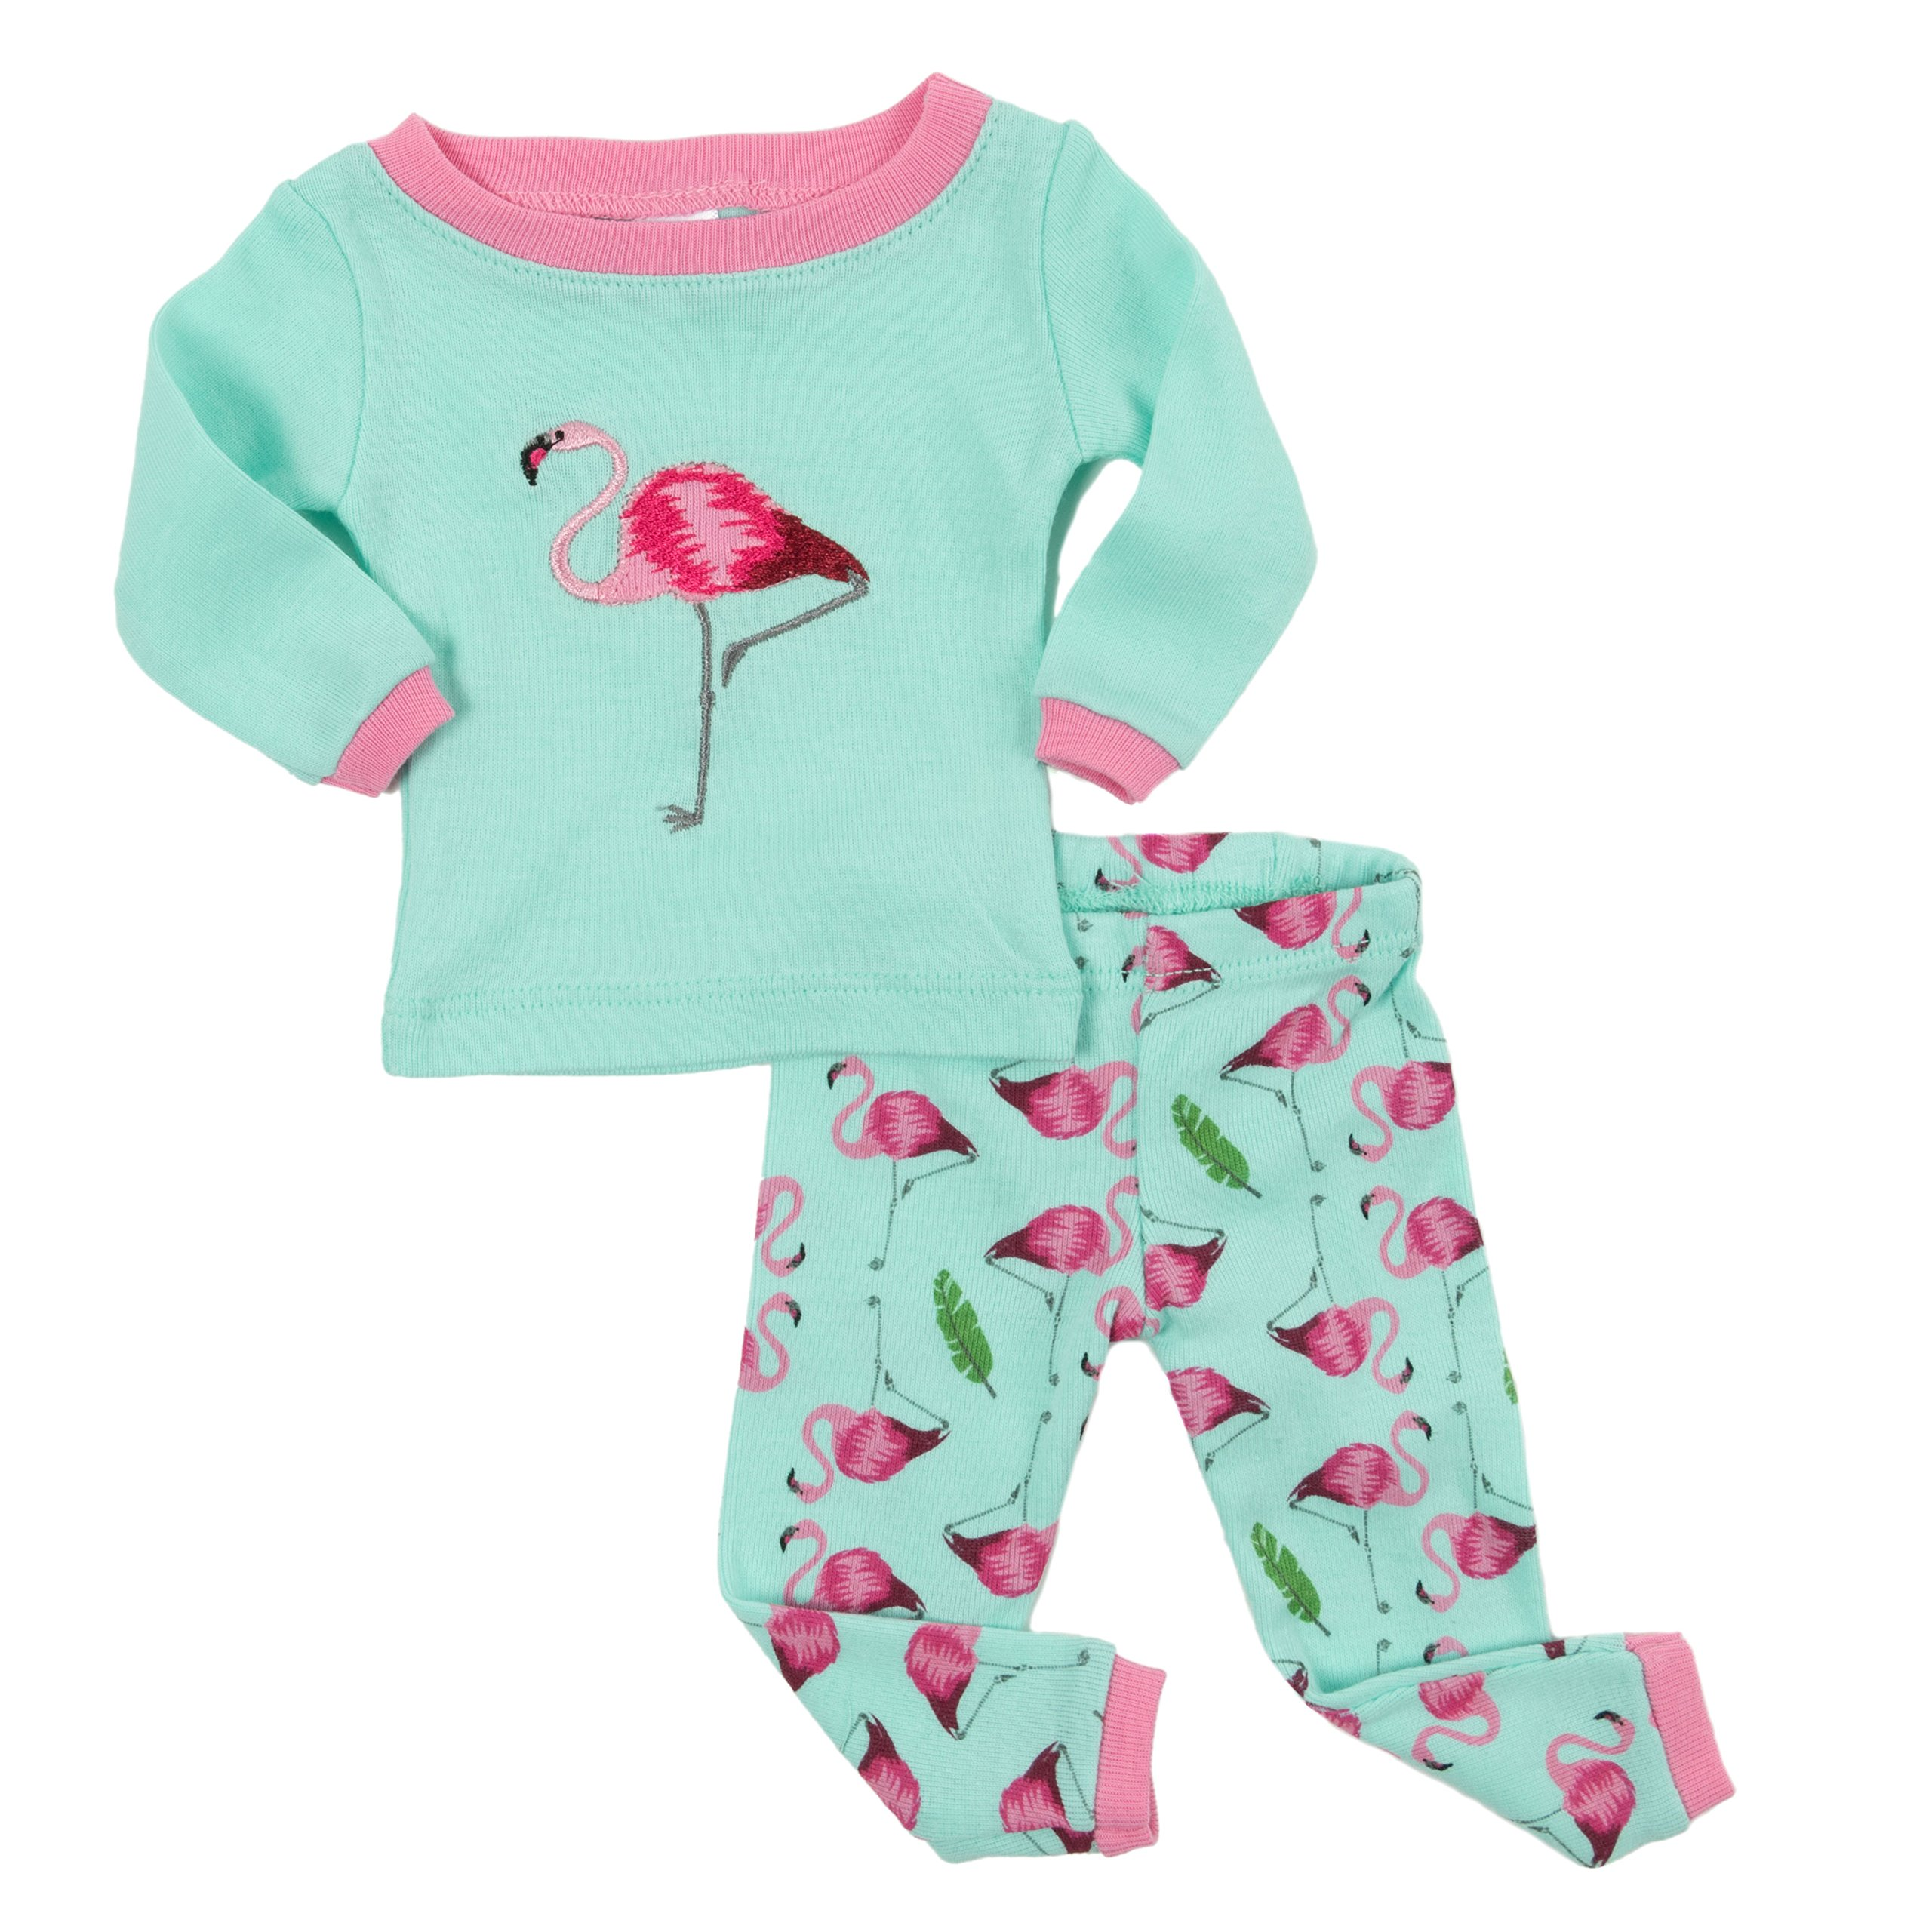 Leveret Matching Doll & Girl Flamingo 2 Piece Pajama Set 100% Cotton Size 10 Years by Leveret (Image #5)